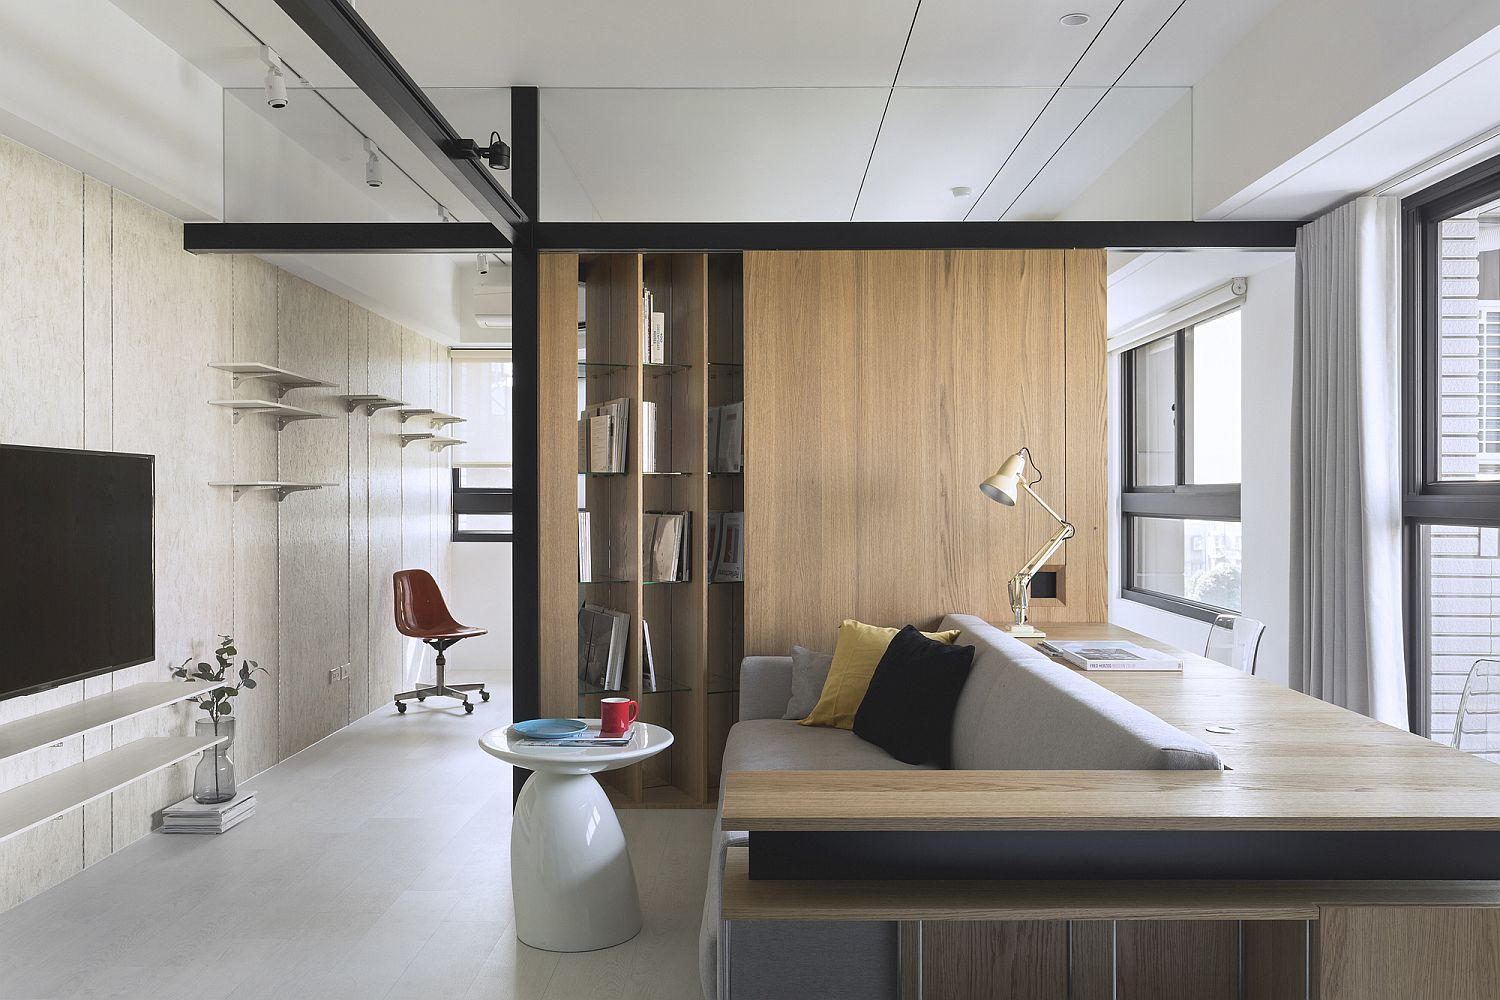 Mirrors-and-wood-help-create-a-cool-and-angled-bookshelf-in-the-living-room